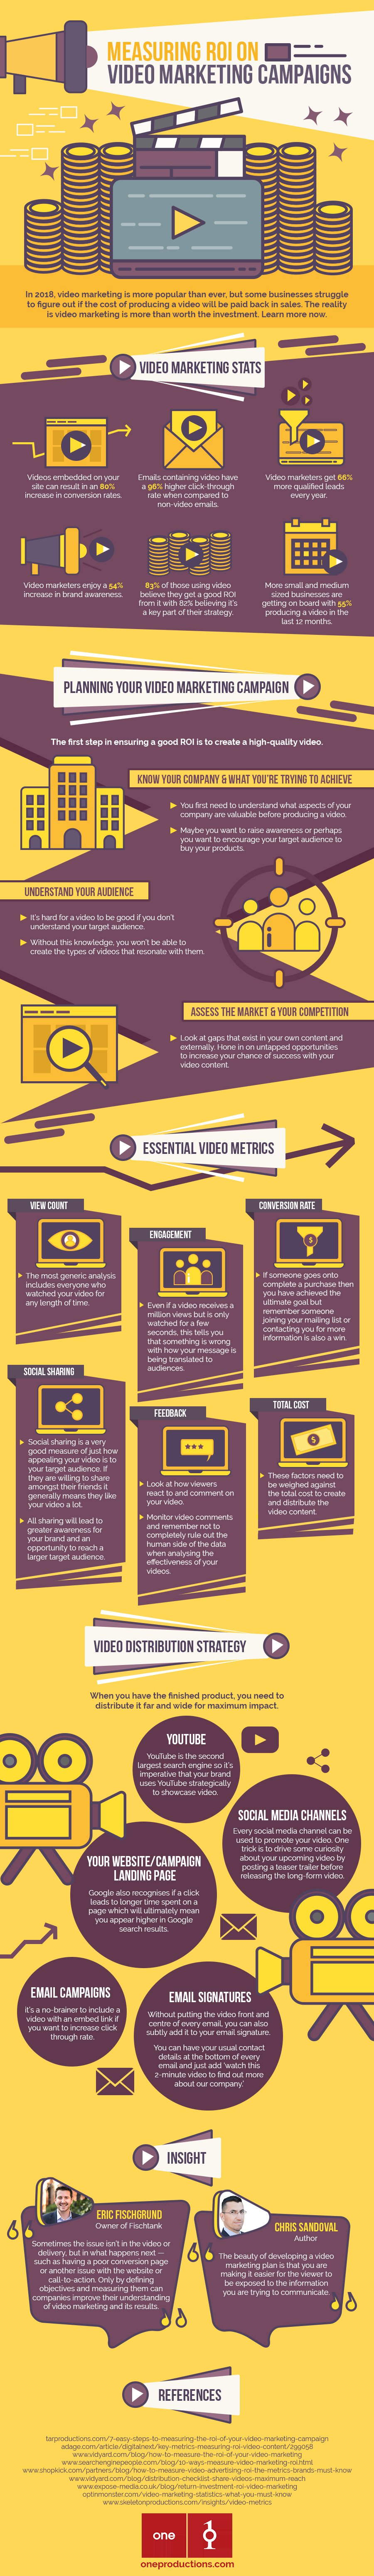 Measuring ROI on Video Marketing Campaigns [Infographic]